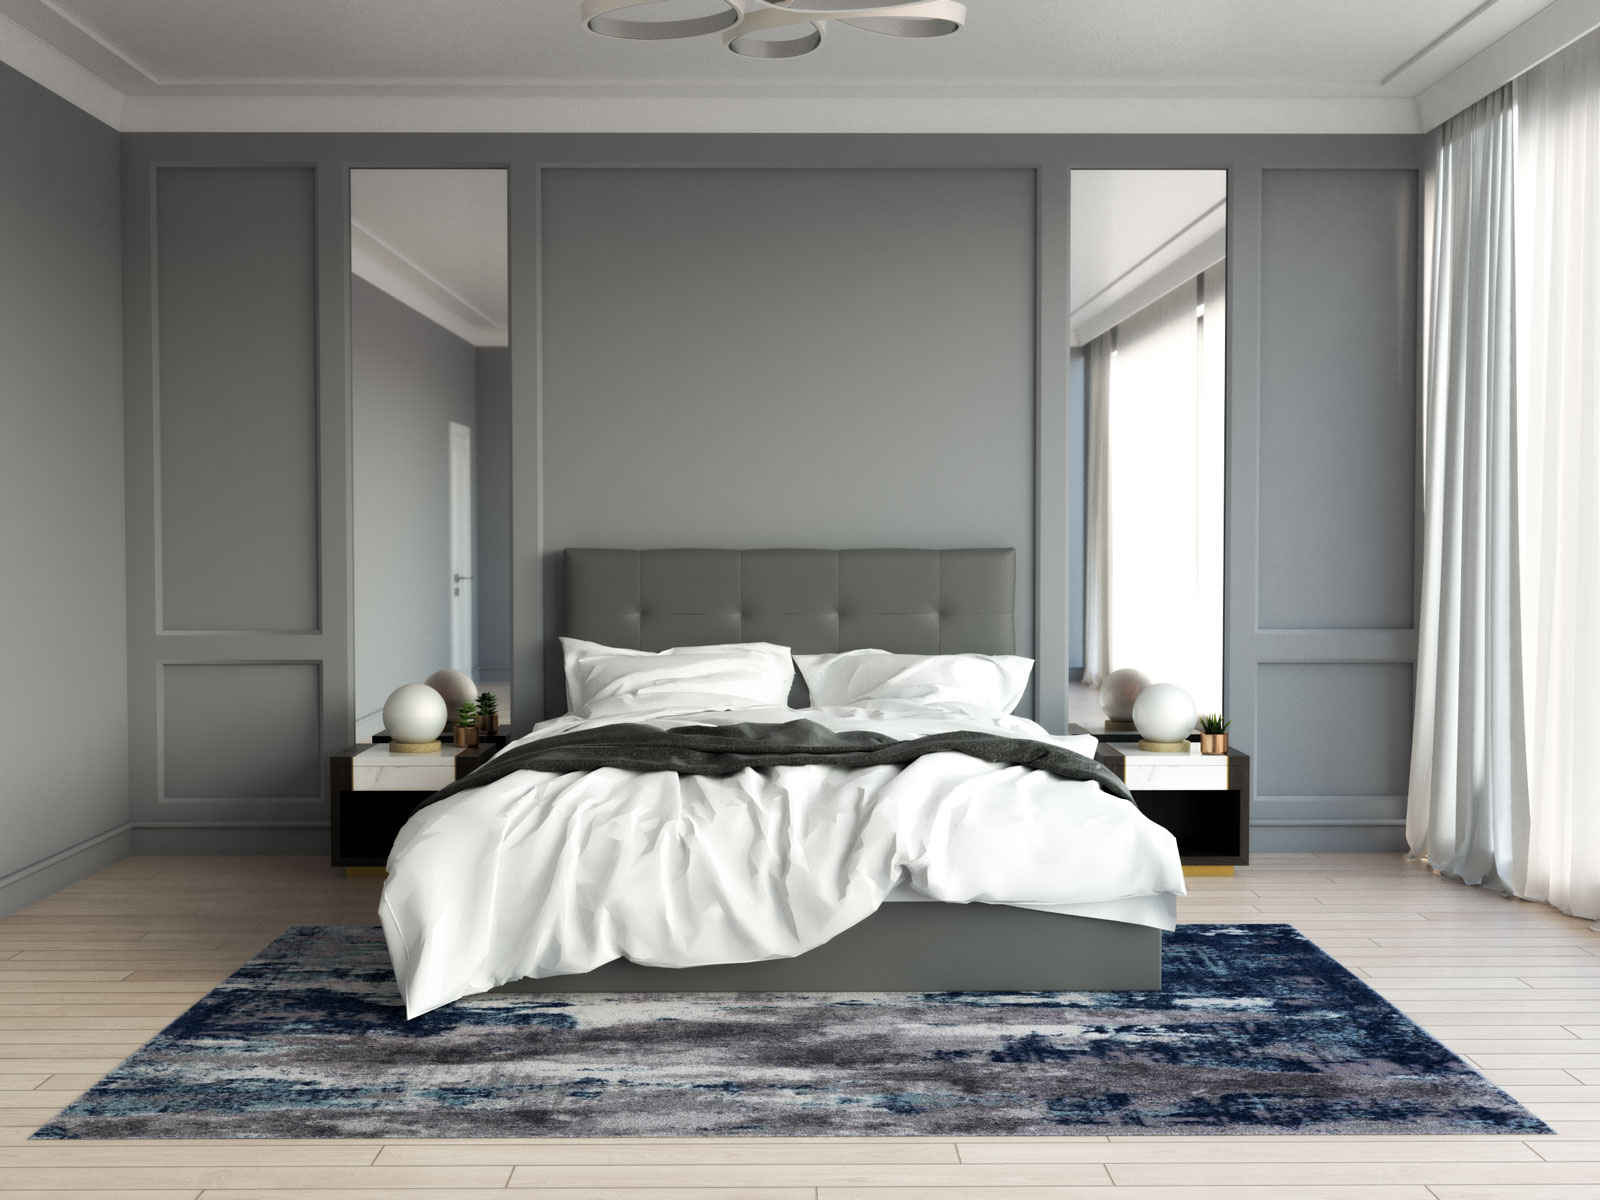 Gray and navy blue rug in bedroom with gray walls